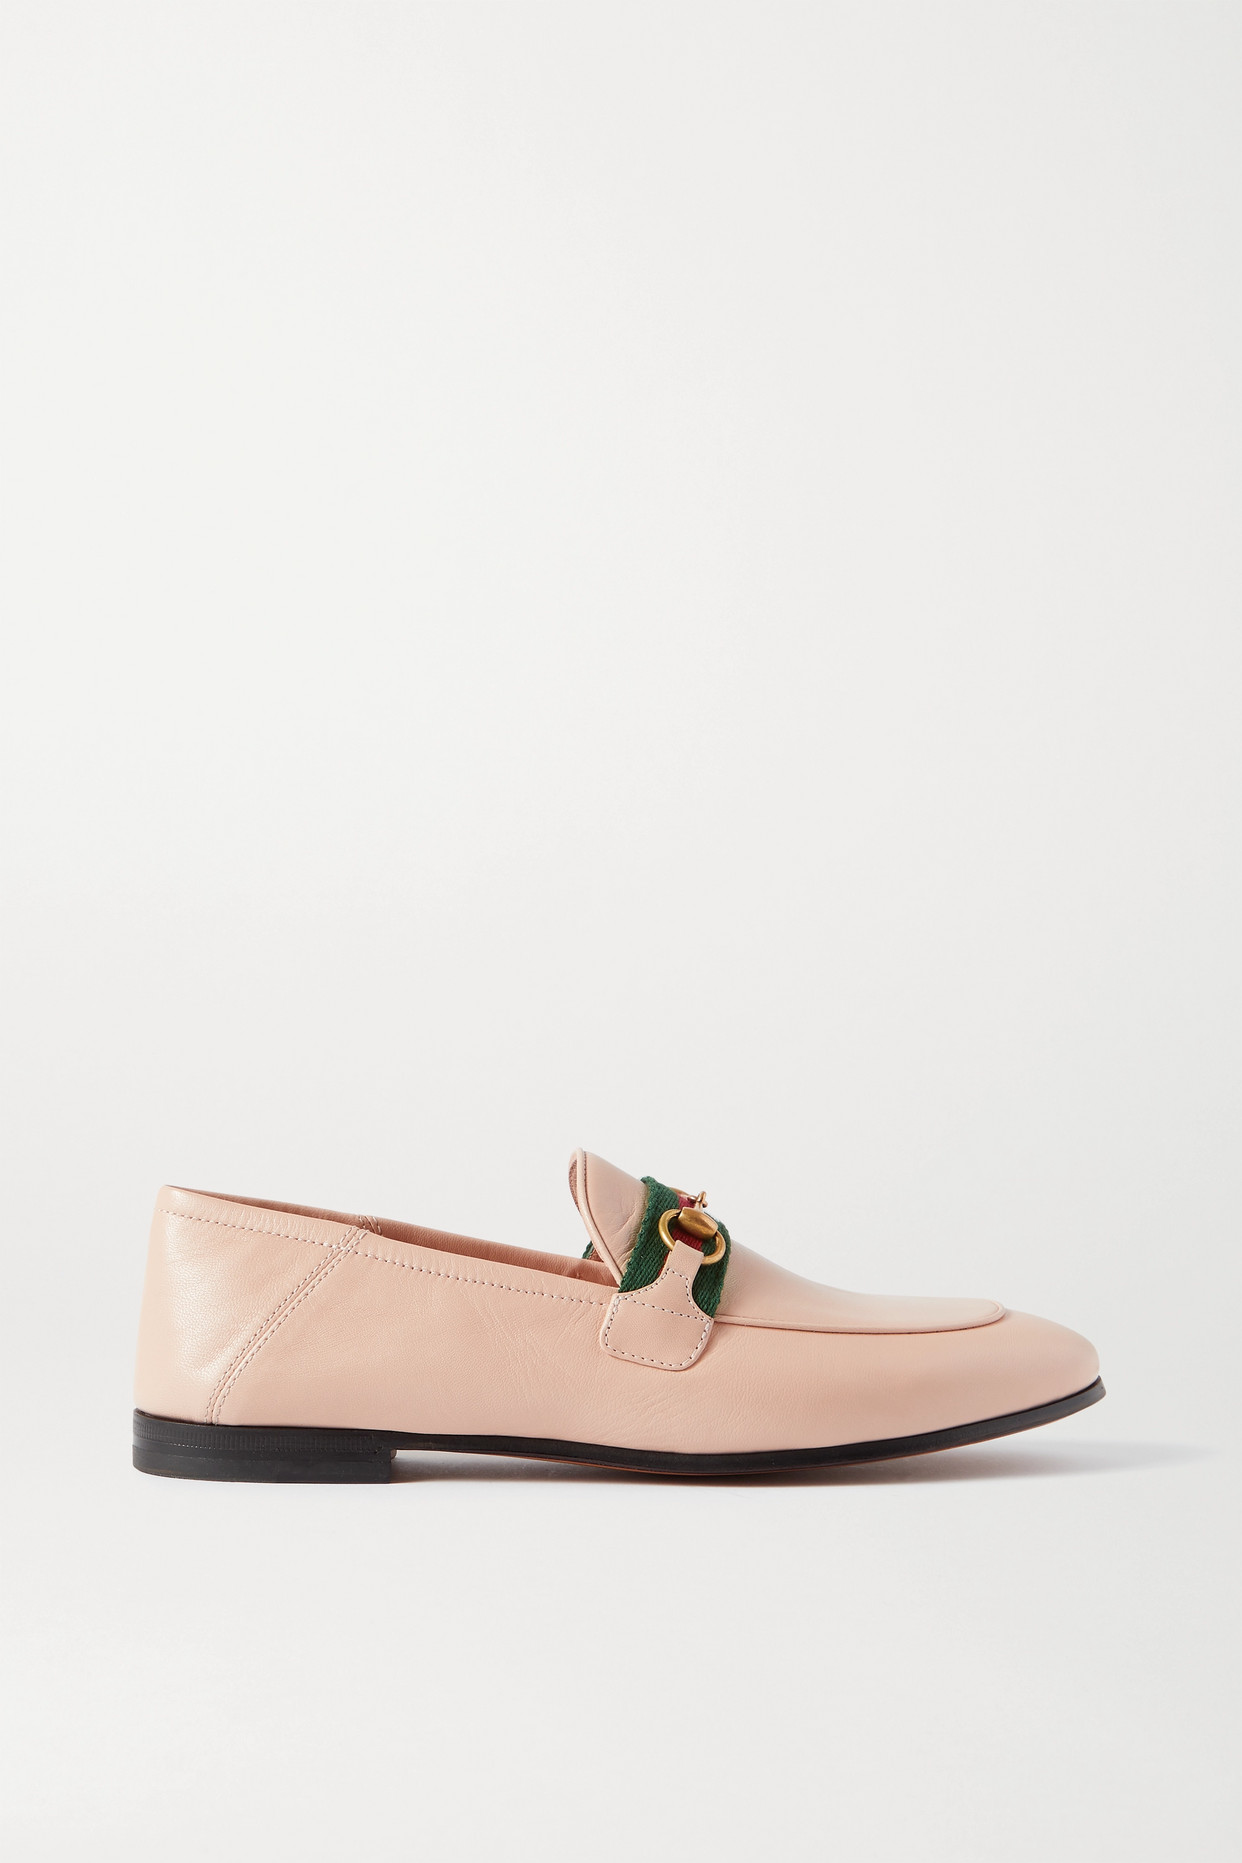 GUCCI - Brixton Horsebit-detailed Webbing-trimmed Leather Collapsible-heel Loafers - Cream - IT36.5